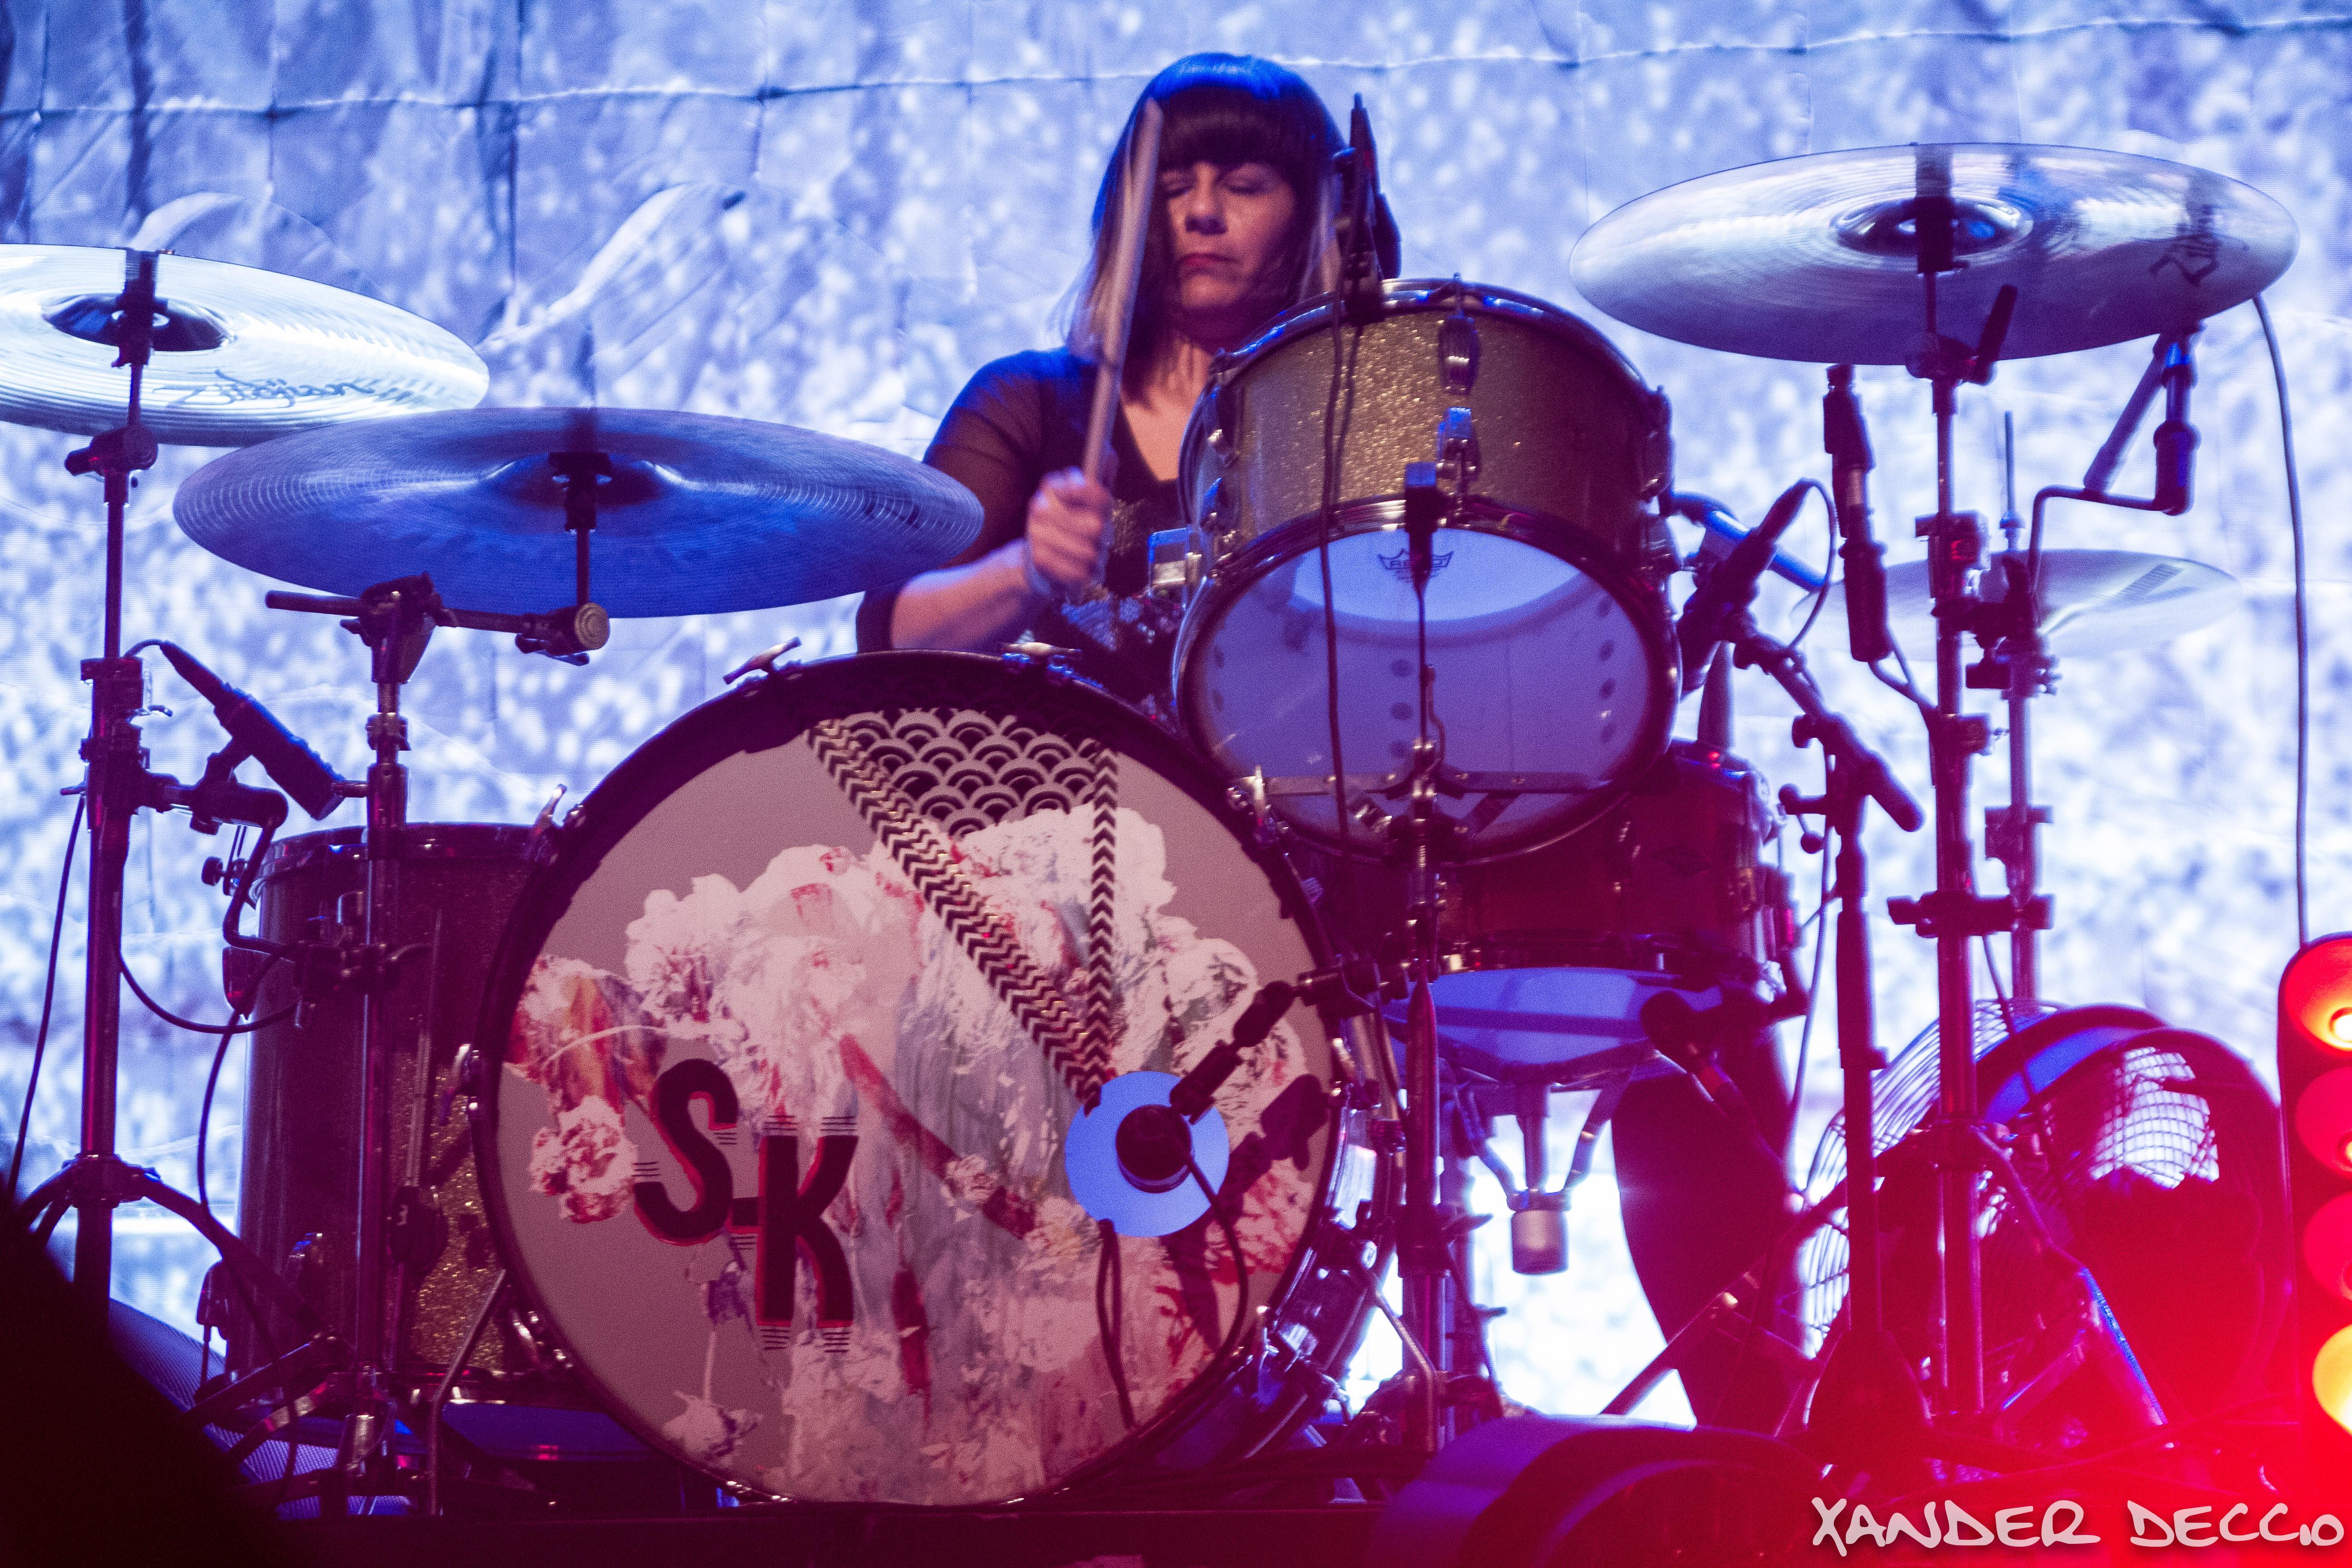 Sleater-Kinney @ The Knitting Factory (Photo By Xander Deccio)